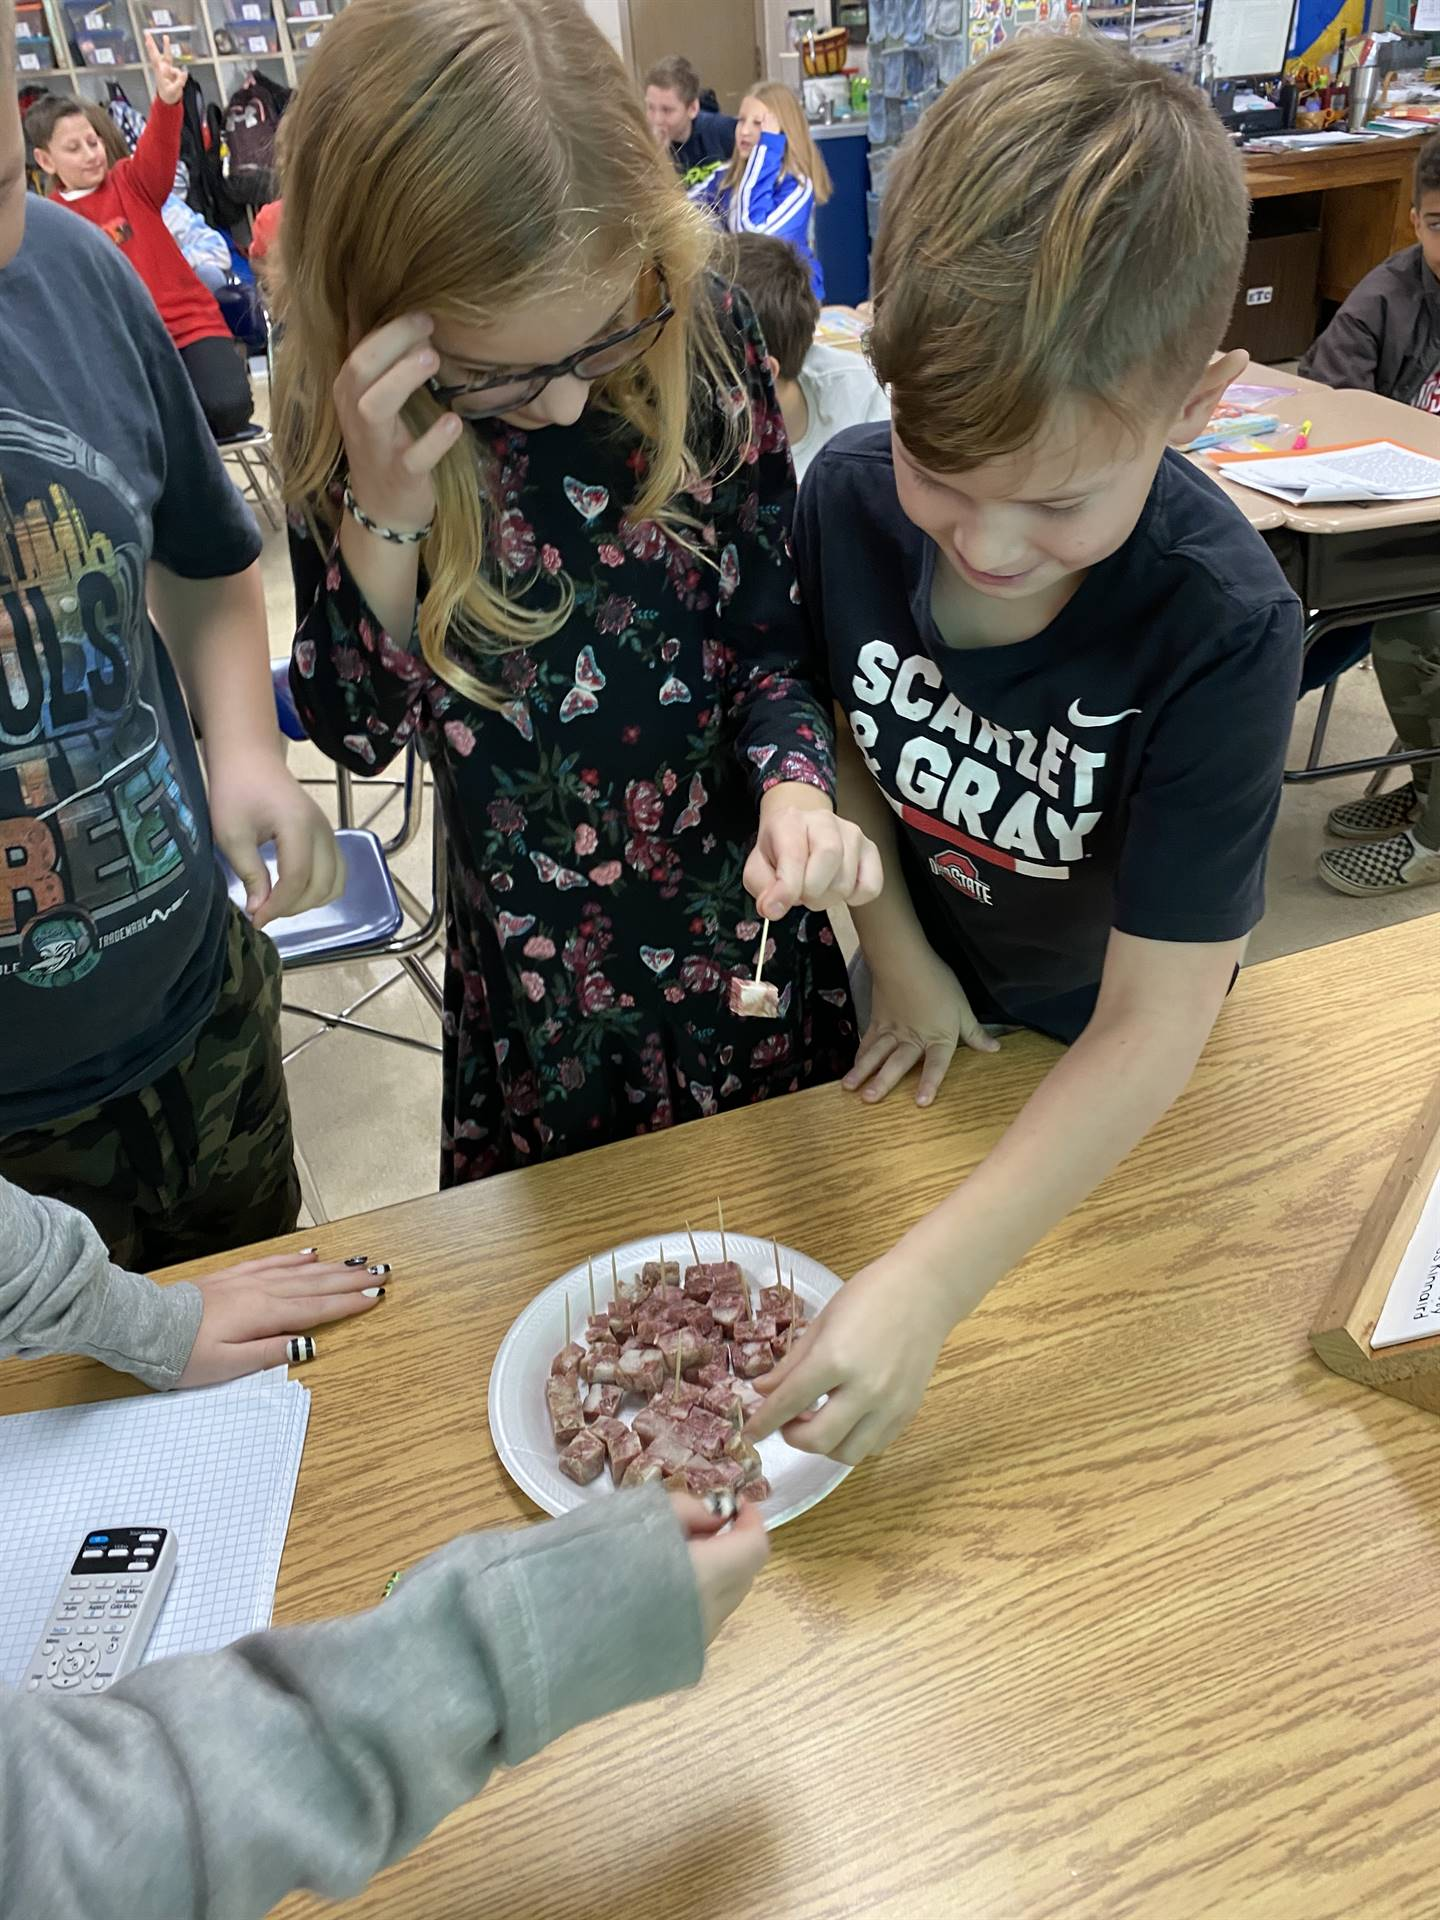 4th graders trying head cheese